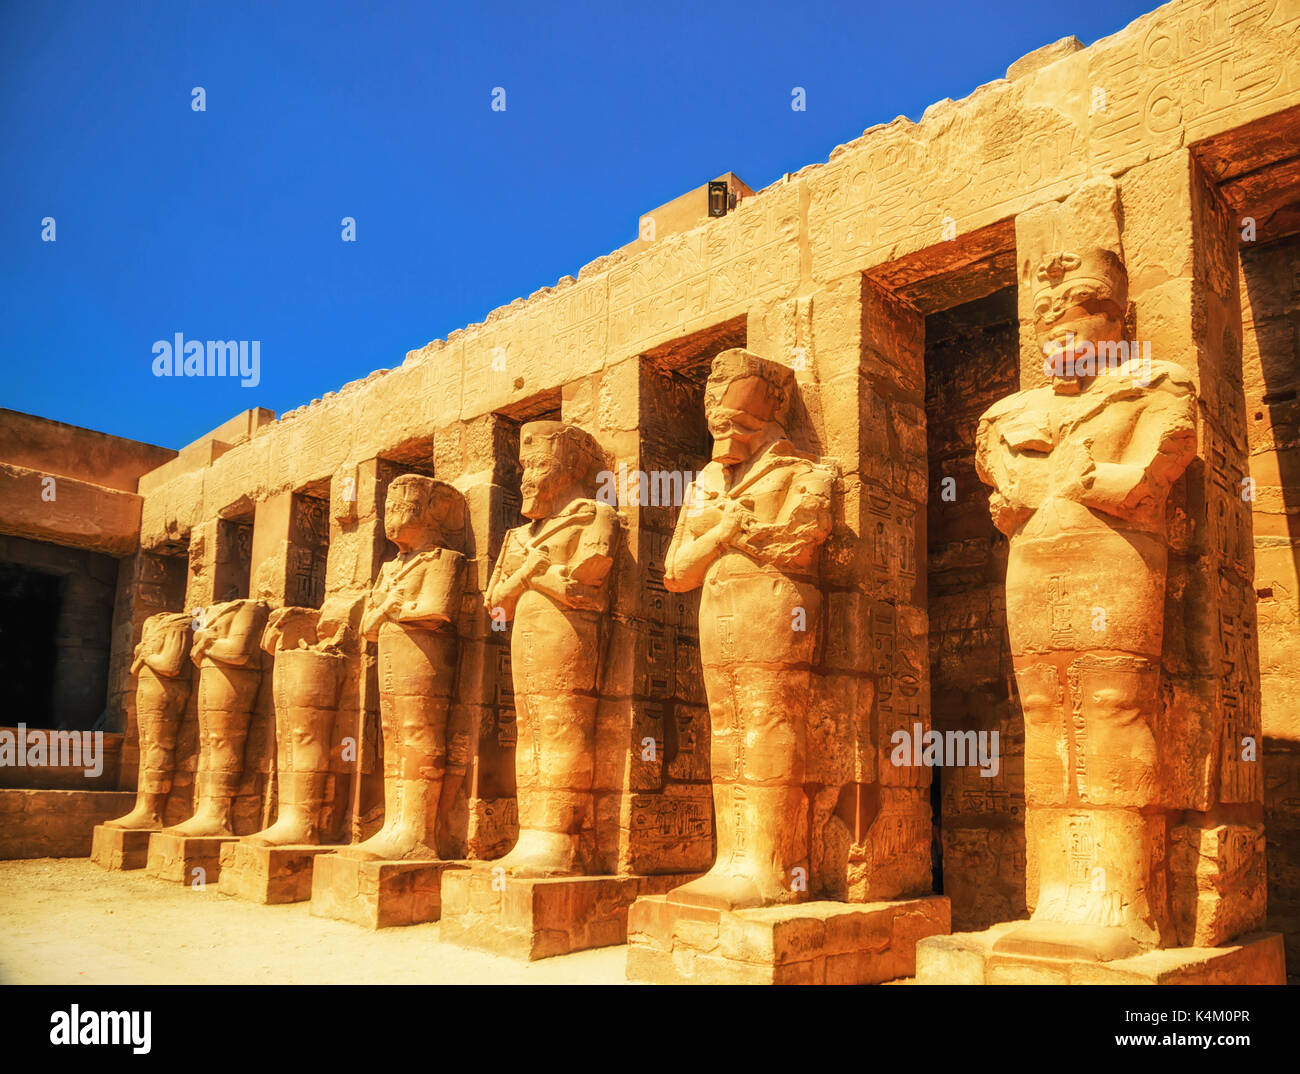 Karnak Temple, Hall of caryatids. Luxor, Egypt - Stock Image